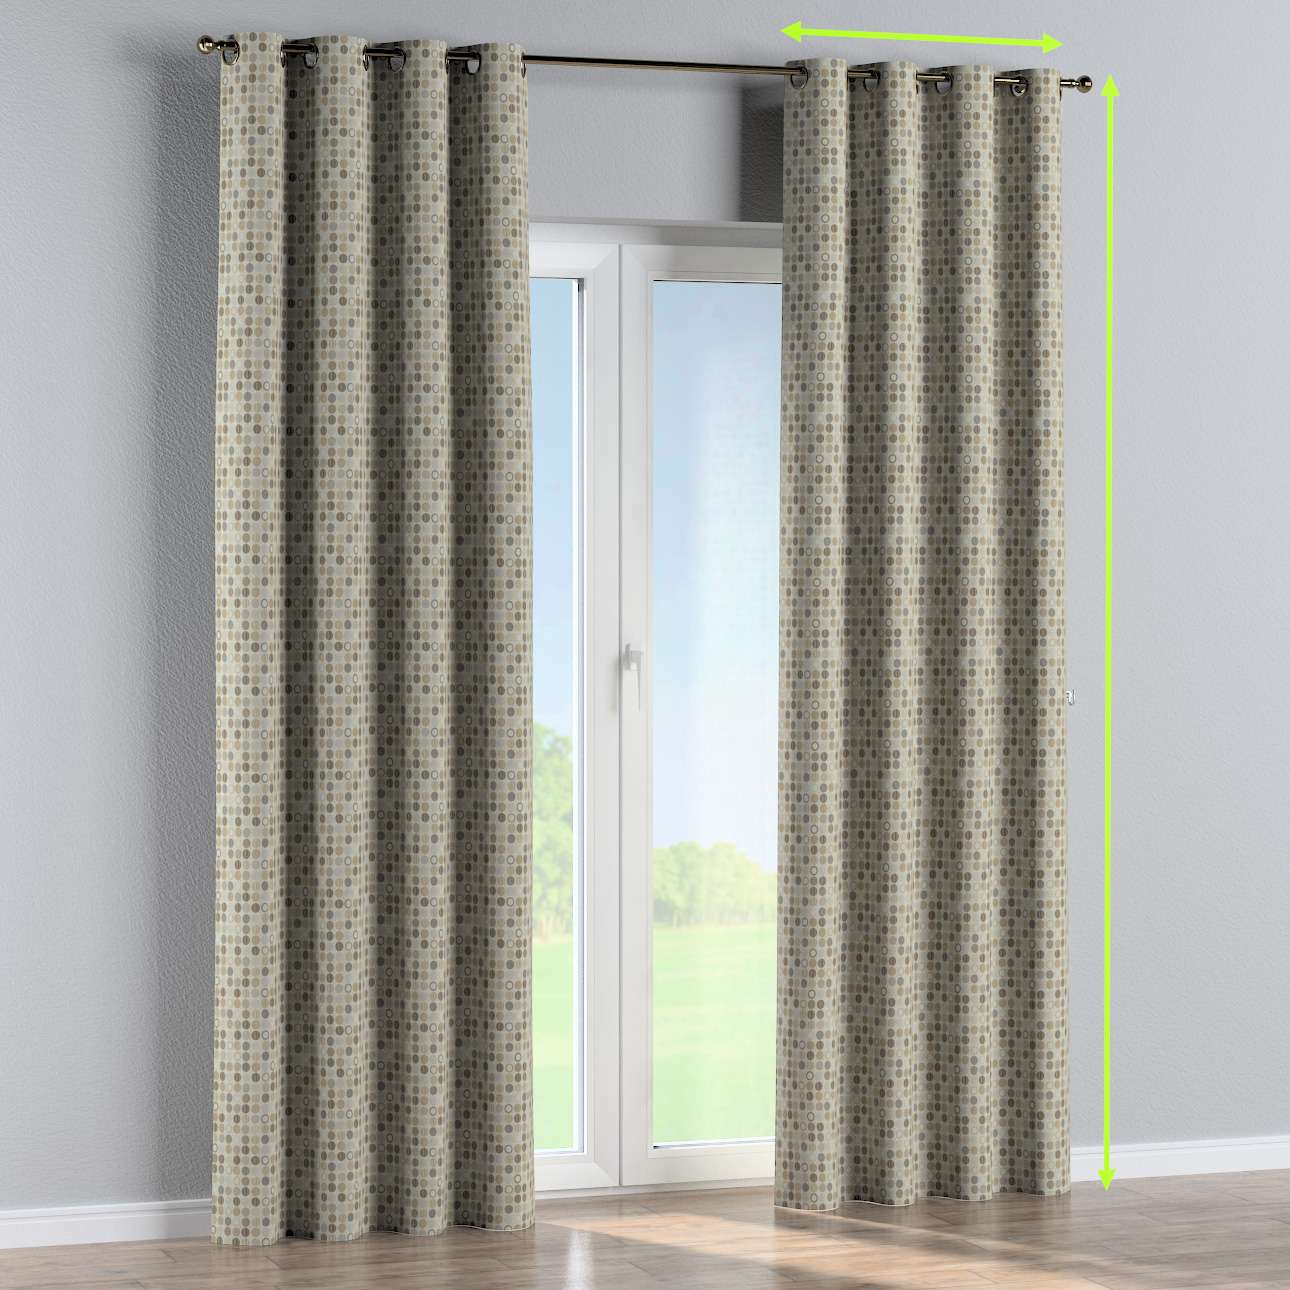 Eyelet curtain in collection Retro Glam, fabric: 142-81